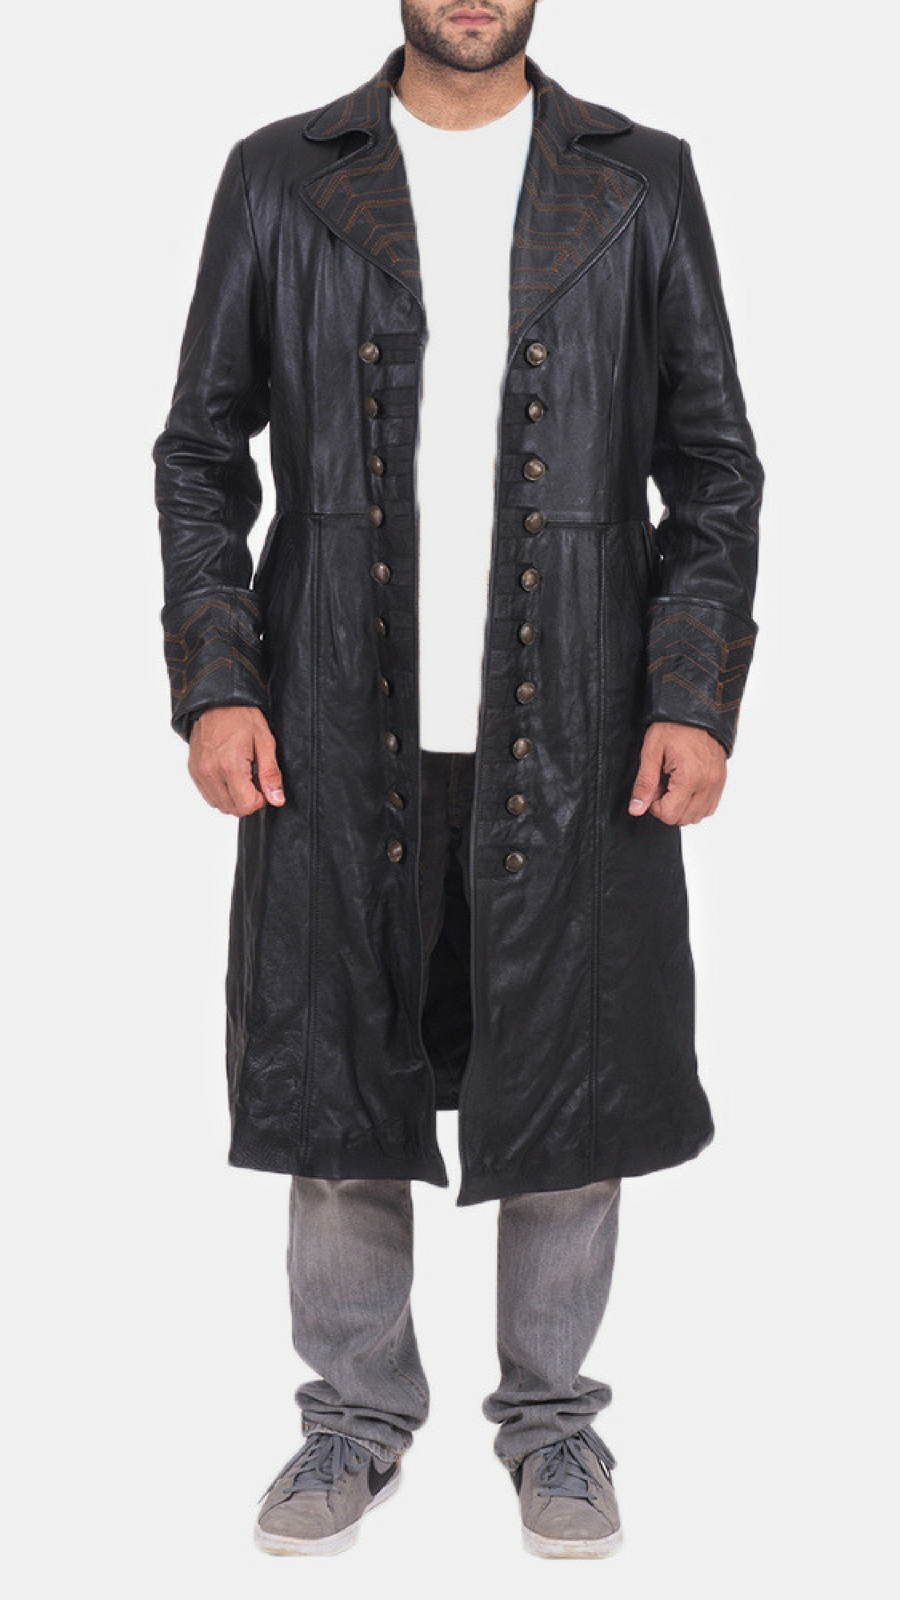 Coat Worldwide Mens Black Pirate Shipping Free Leather 9HbeYIED2W